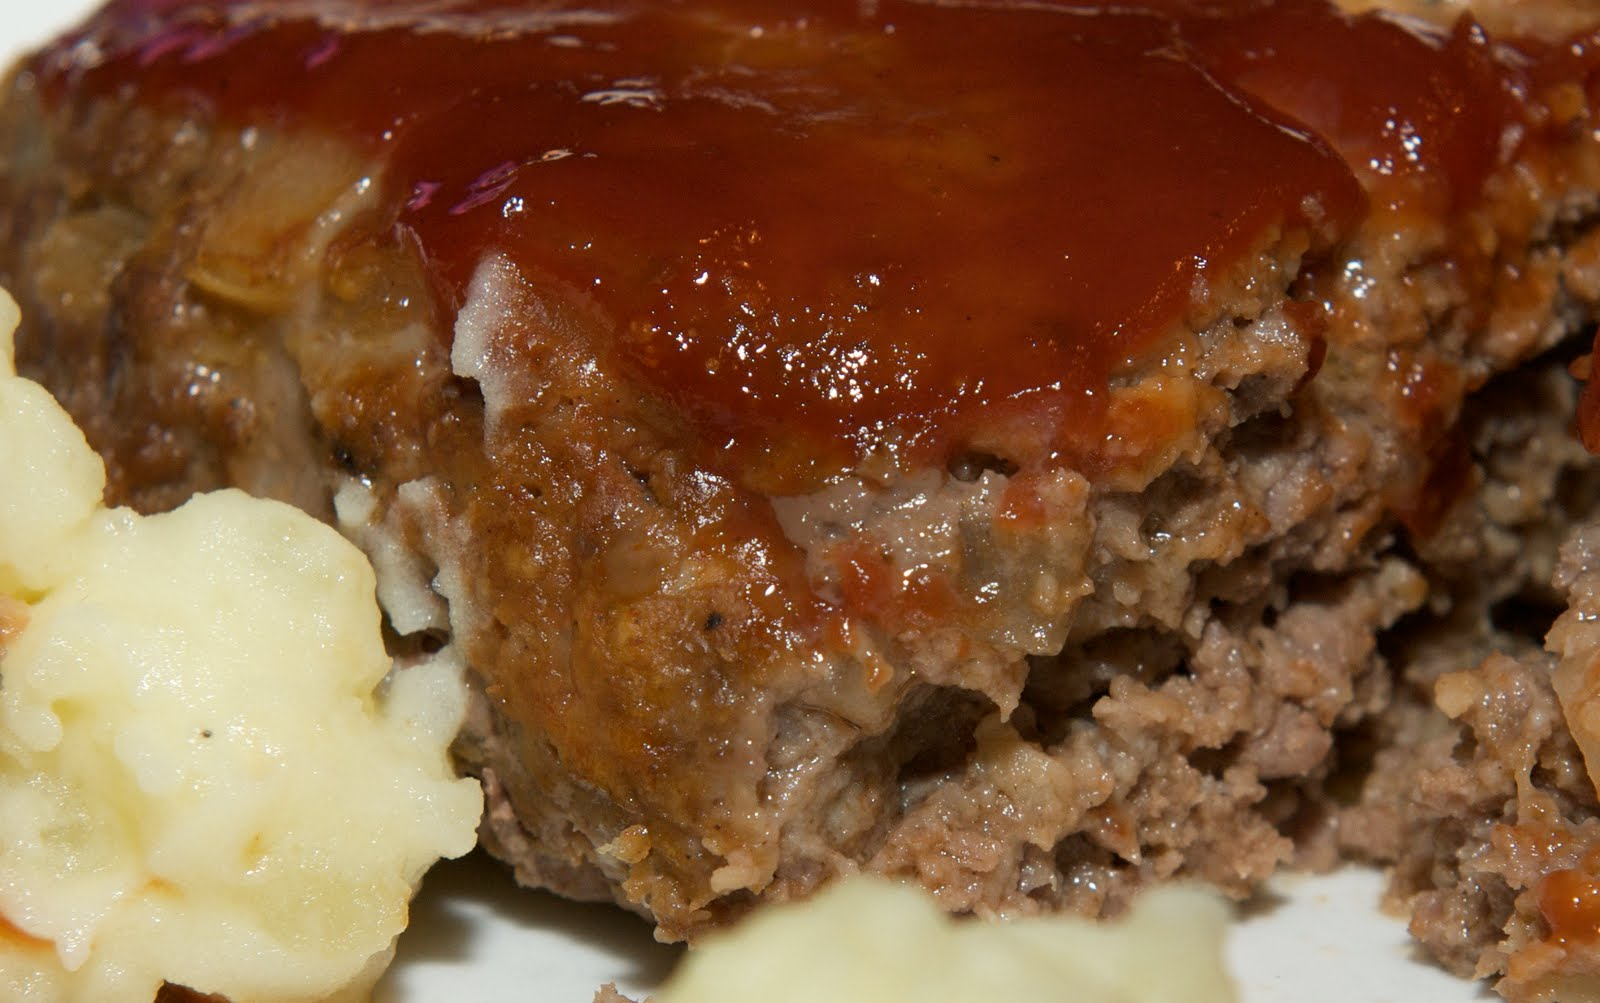 Monday's meatloaf and buttermilk mashed potatoes were quite delicious ...